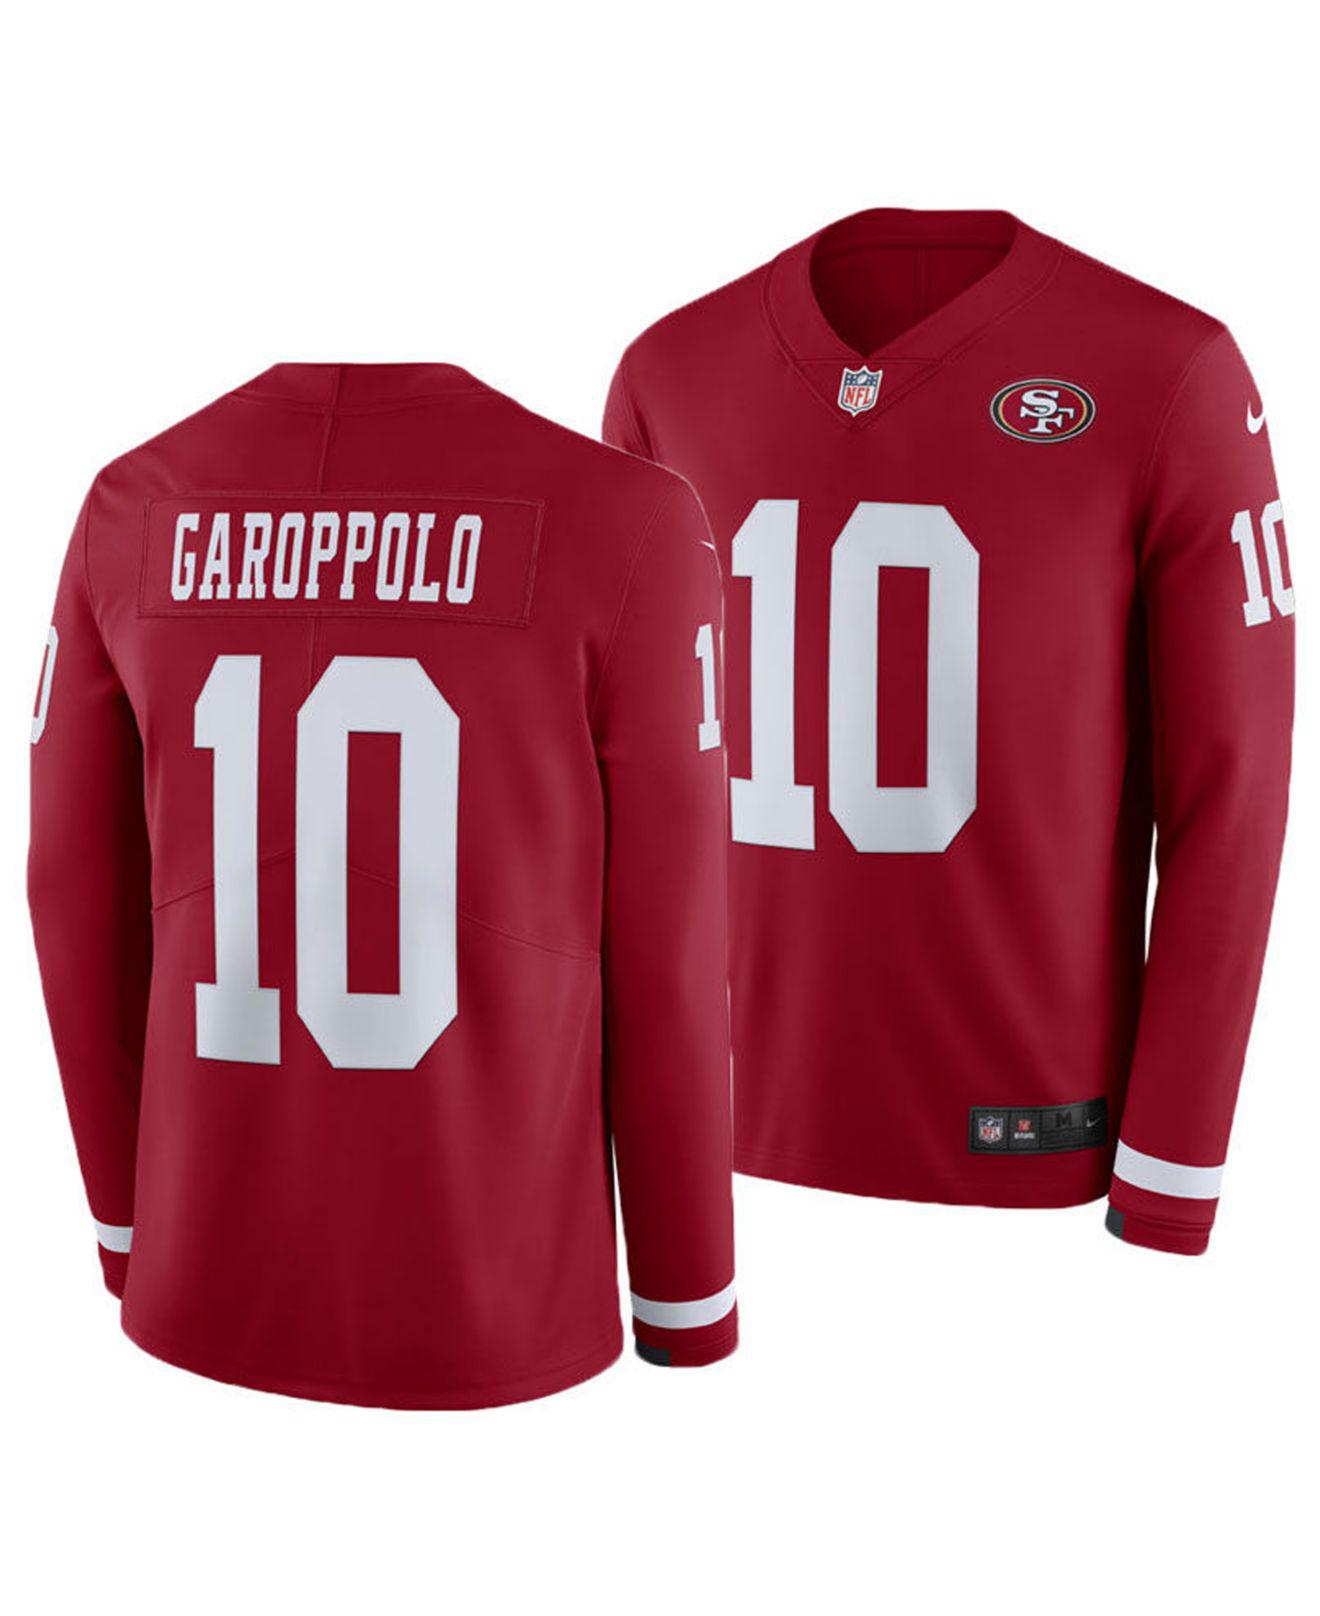 official photos fc391 f6194 Lyst - Nike Jimmy Garoppolo San Francisco 49ers Therma ...